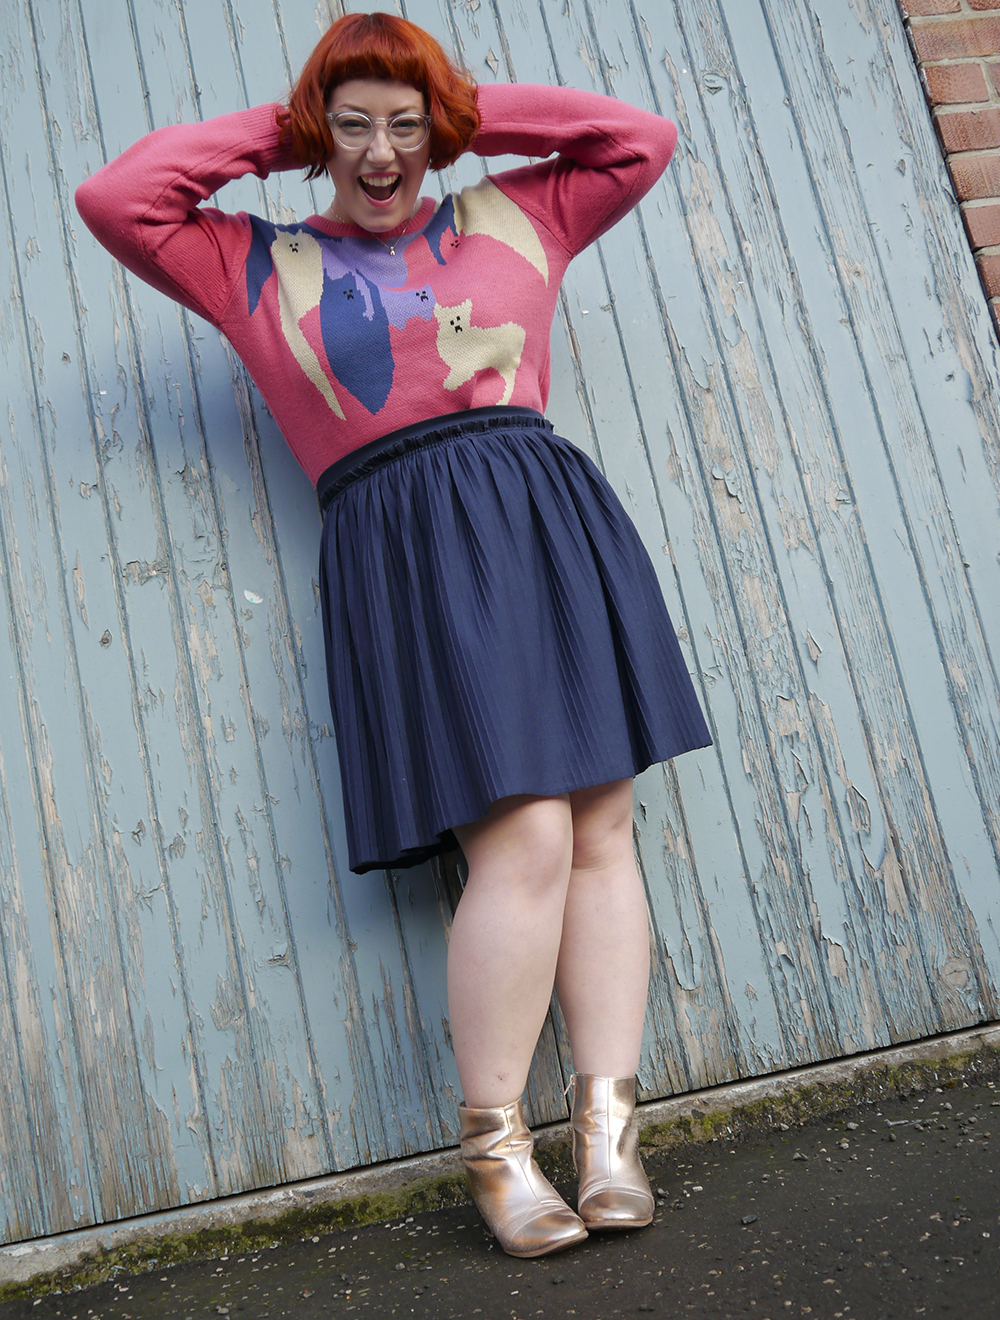 Styled by Helen, Scottish blogger, Dundee blogger, Scottish fashion blogger, quirky style, Scottish street style, cute style, cat clothing, dressing to a theme, cat themed clothing, cat jumper, colourful outfit, colourful street style, La La Land, colourful cat jumper, pink jumper, pink and blue outfit, red head, ginger bob, clear glasses, Iolla glasses, cat necklace, silver cat necklace, gold boots, cat pose, cute cat outfit